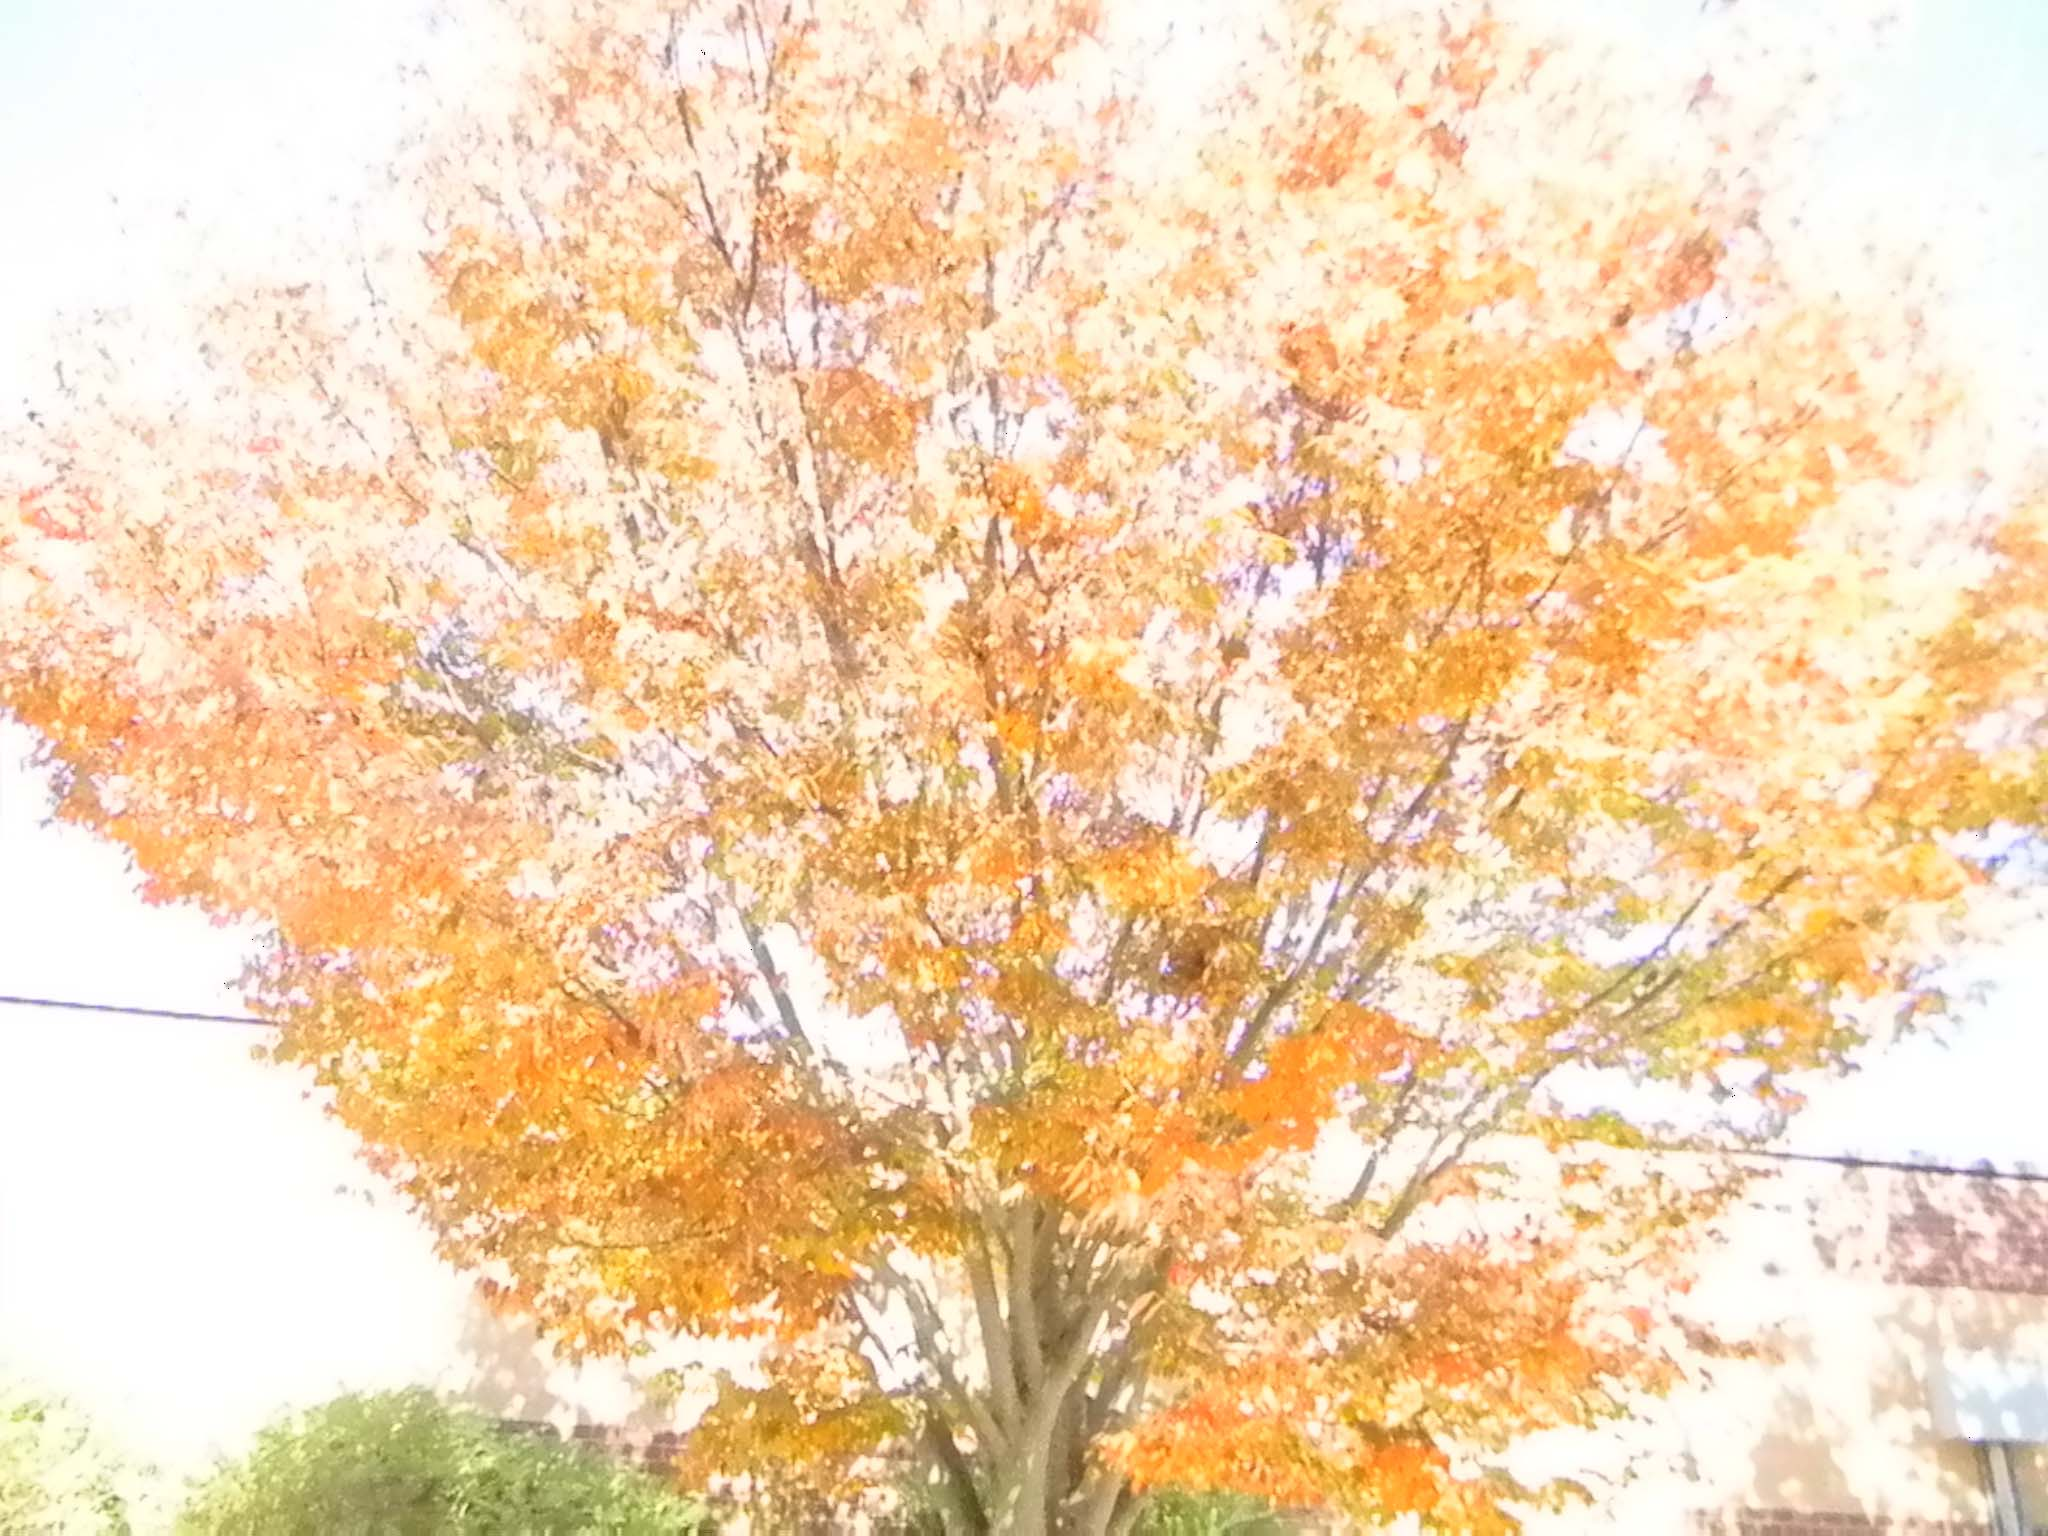 A view of the epic, scenic and captivating tree in Senora Sollie's Spanish III class. Every student was incapable of resisting the view of the glorious fall foliage outside of Sollie's window.